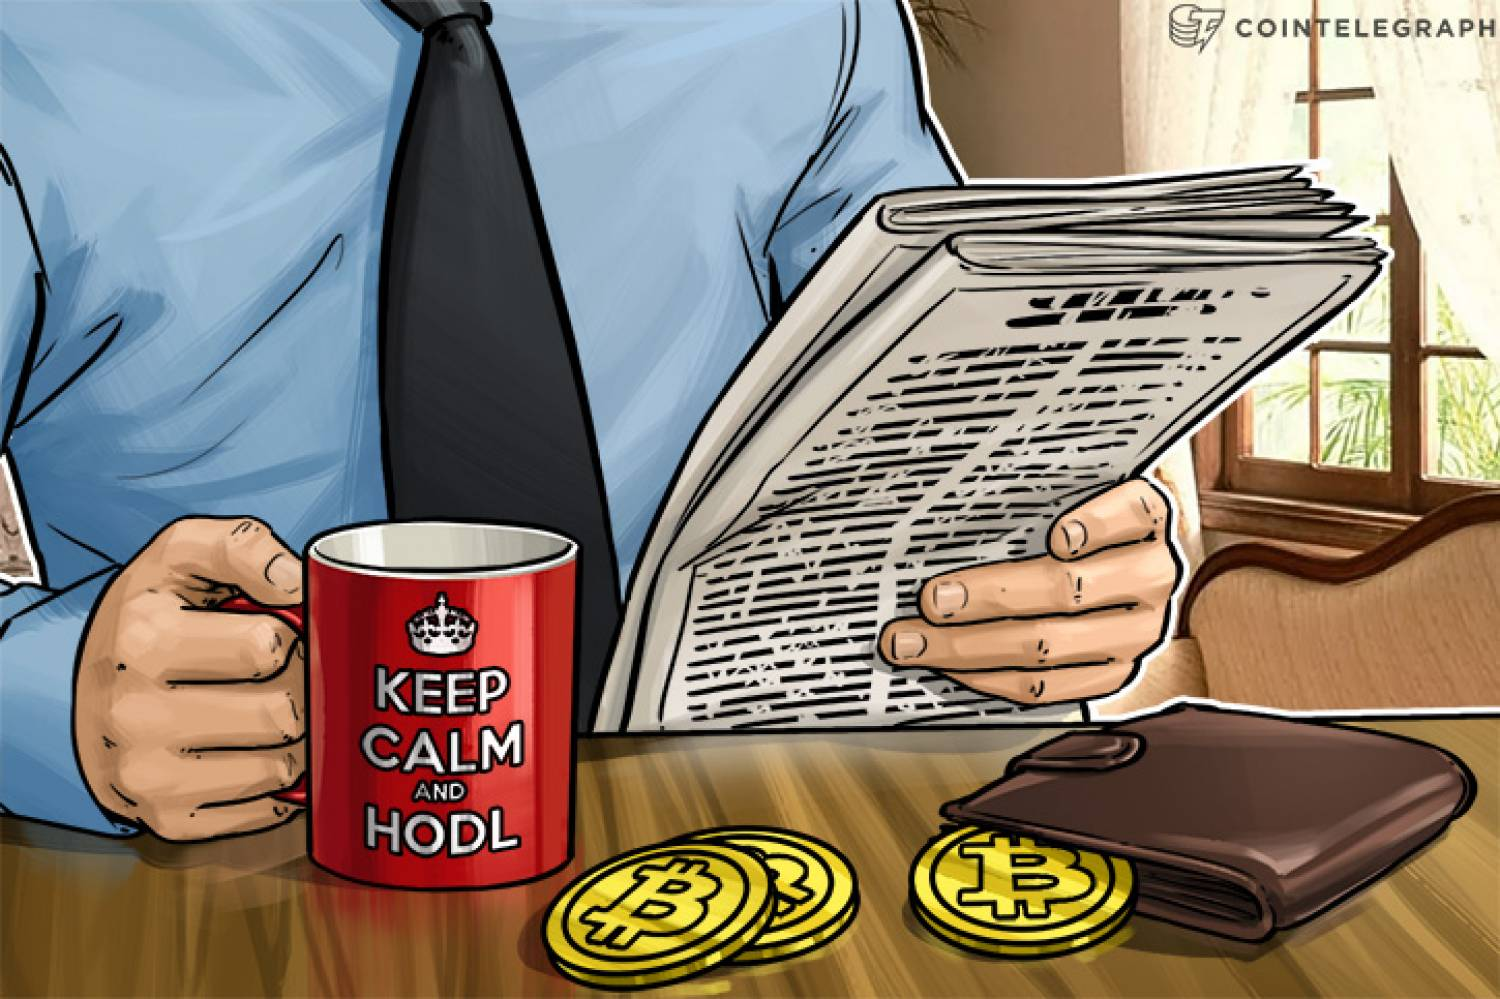 A man drinking coffee in a 'Keep calm and HODL' cup